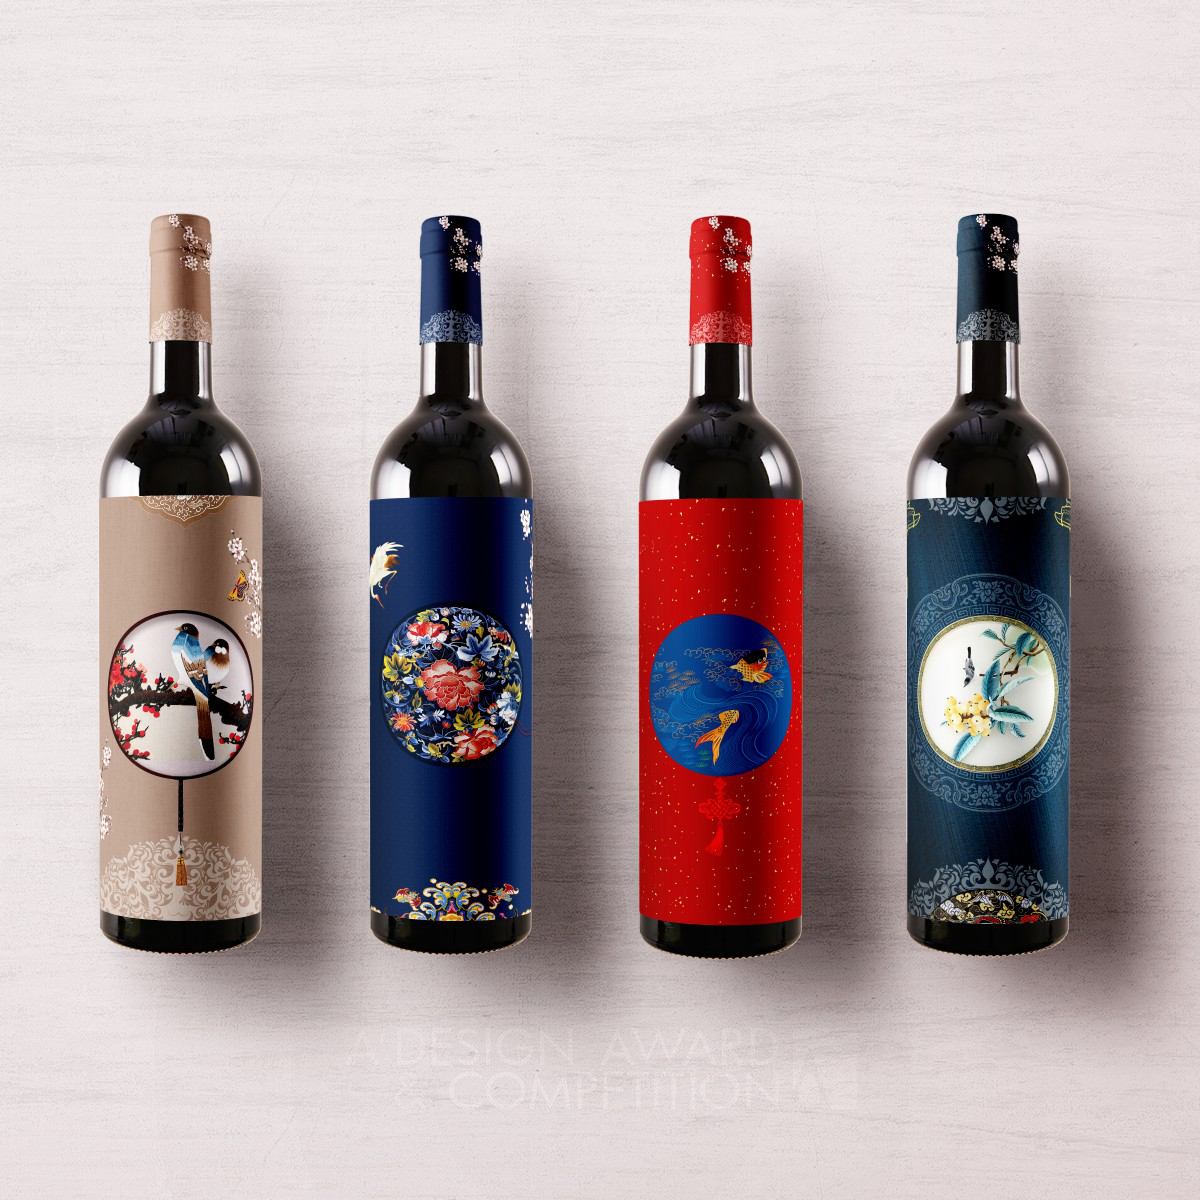 Imperial Palaces Wine packaging